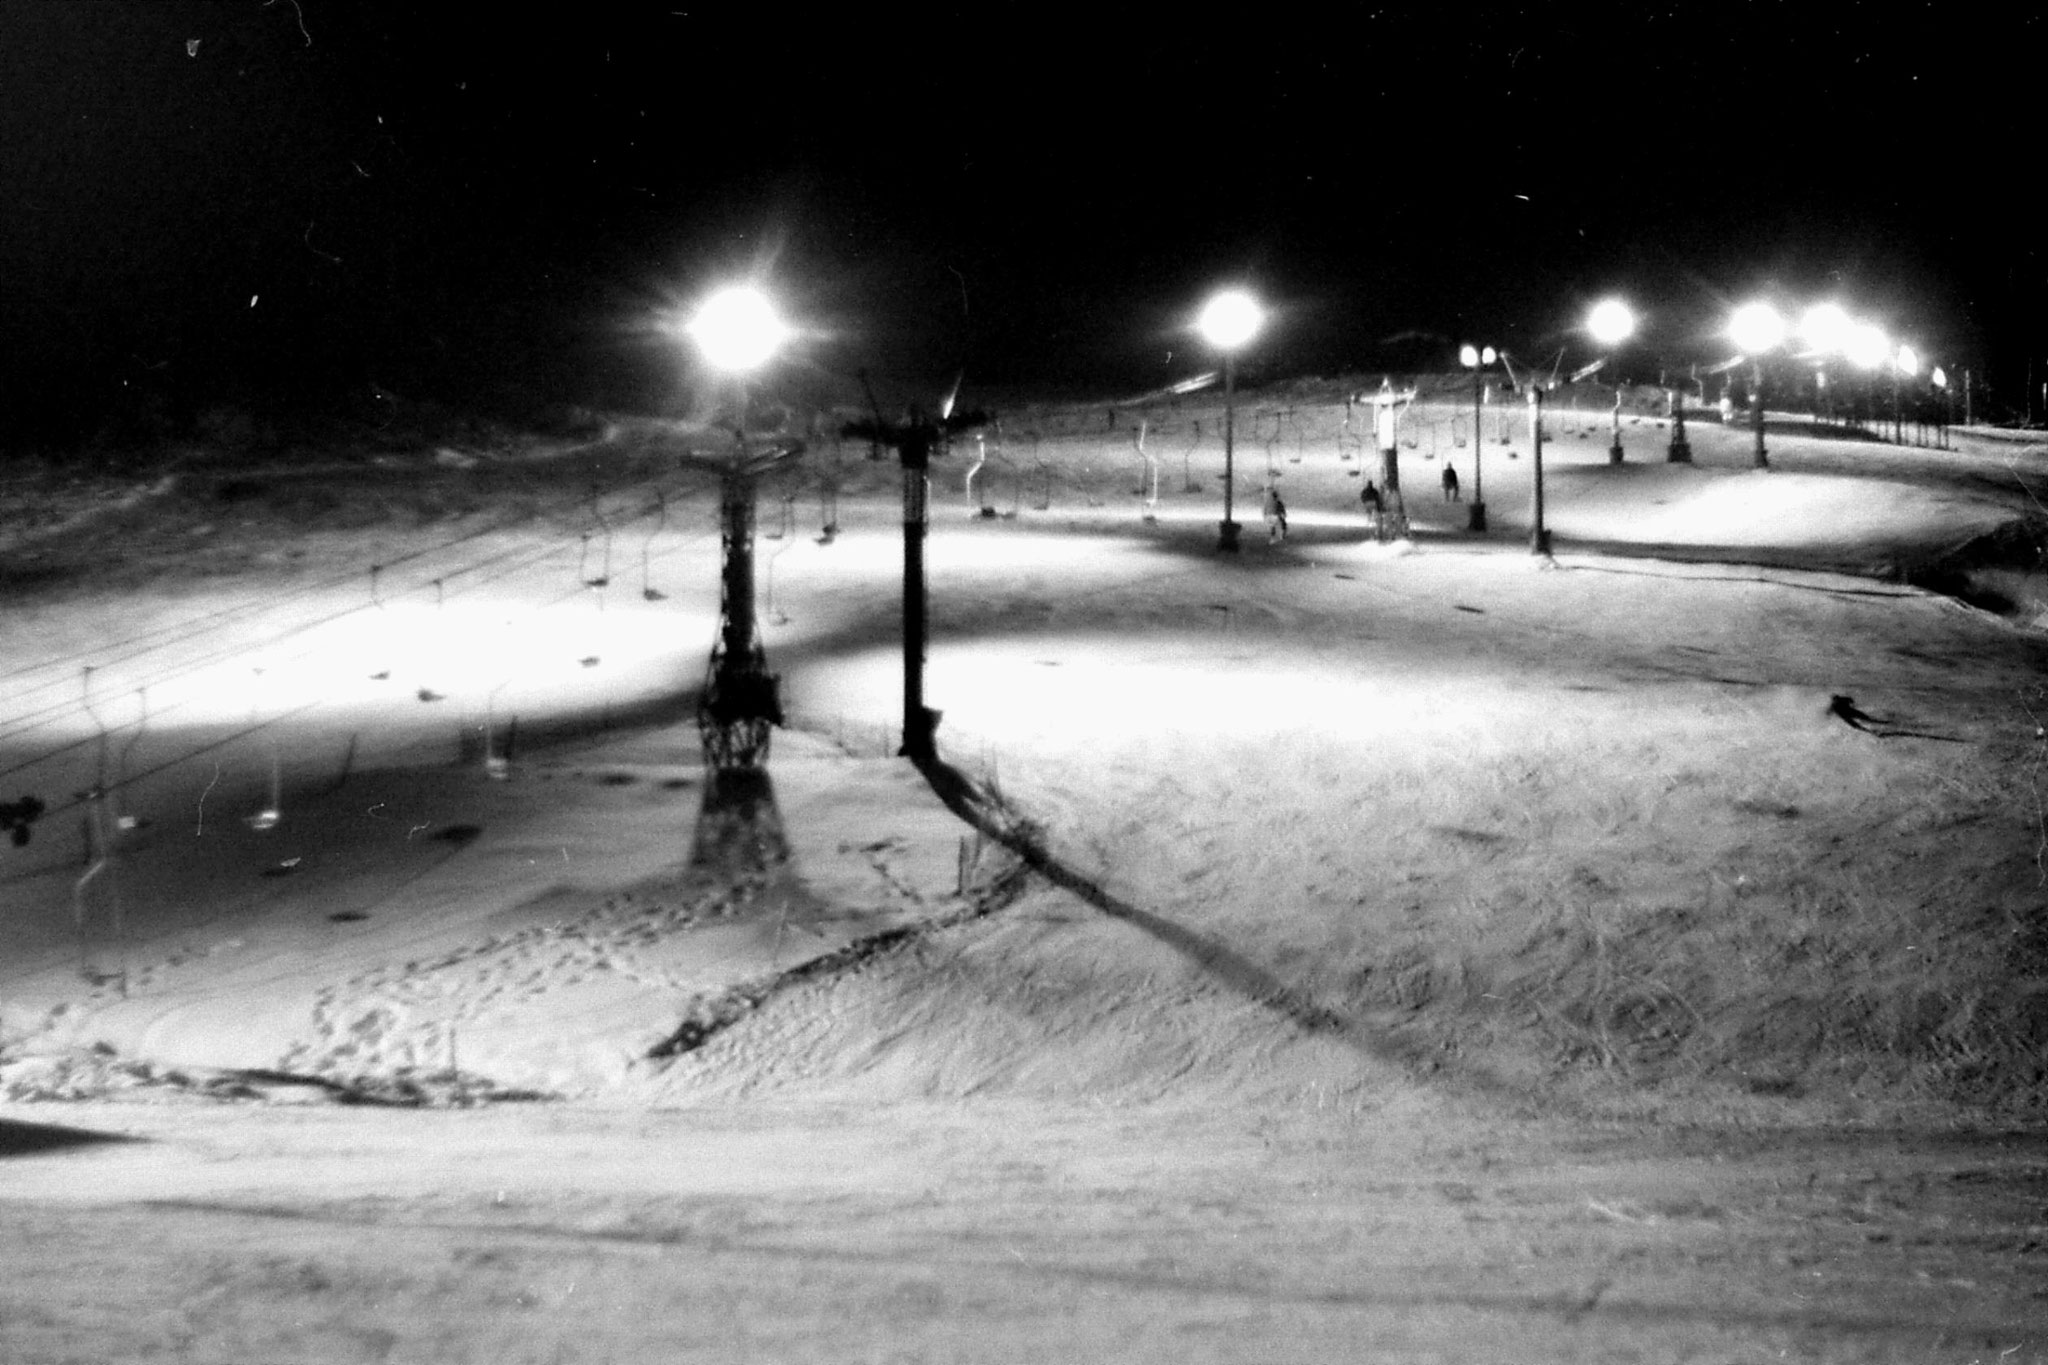 11/1/1989: 0: Floodlit ski slope outside hostel at Asahigawa